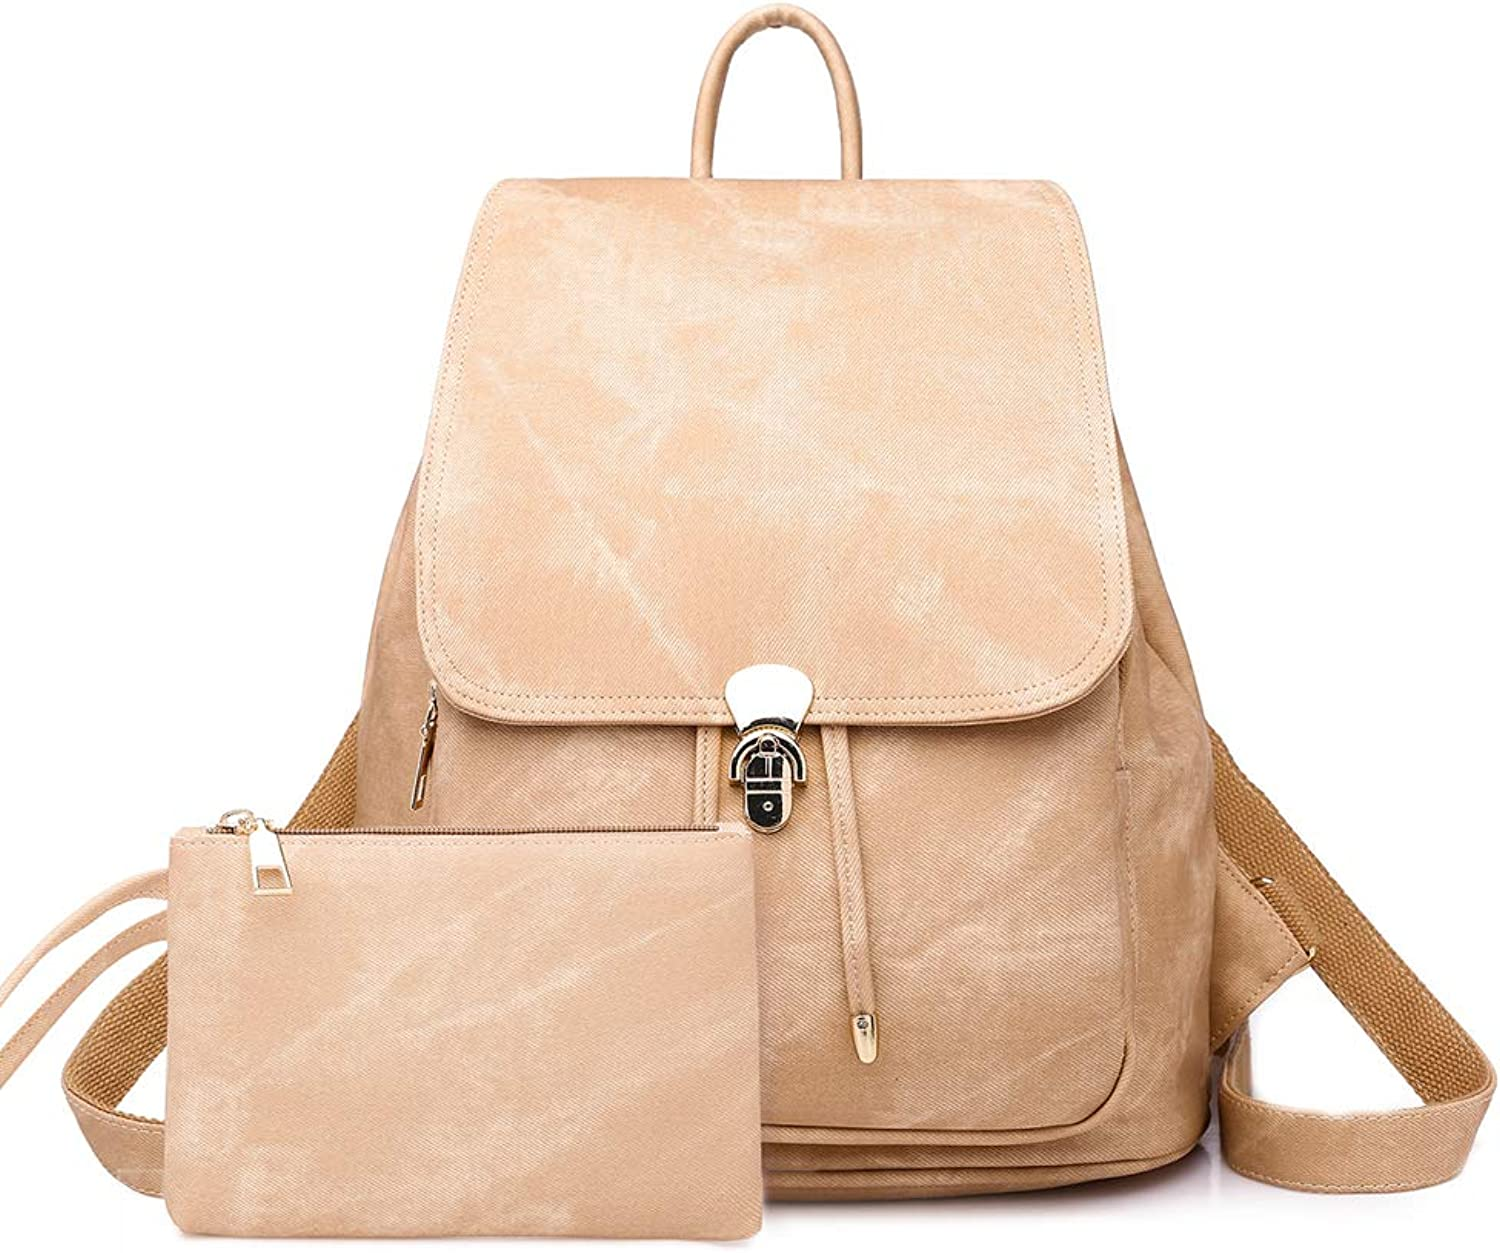 GTG Women's PU Leather Fashion Backpack College School Student Bag Shoulder Bags Casual Handbags For Girls